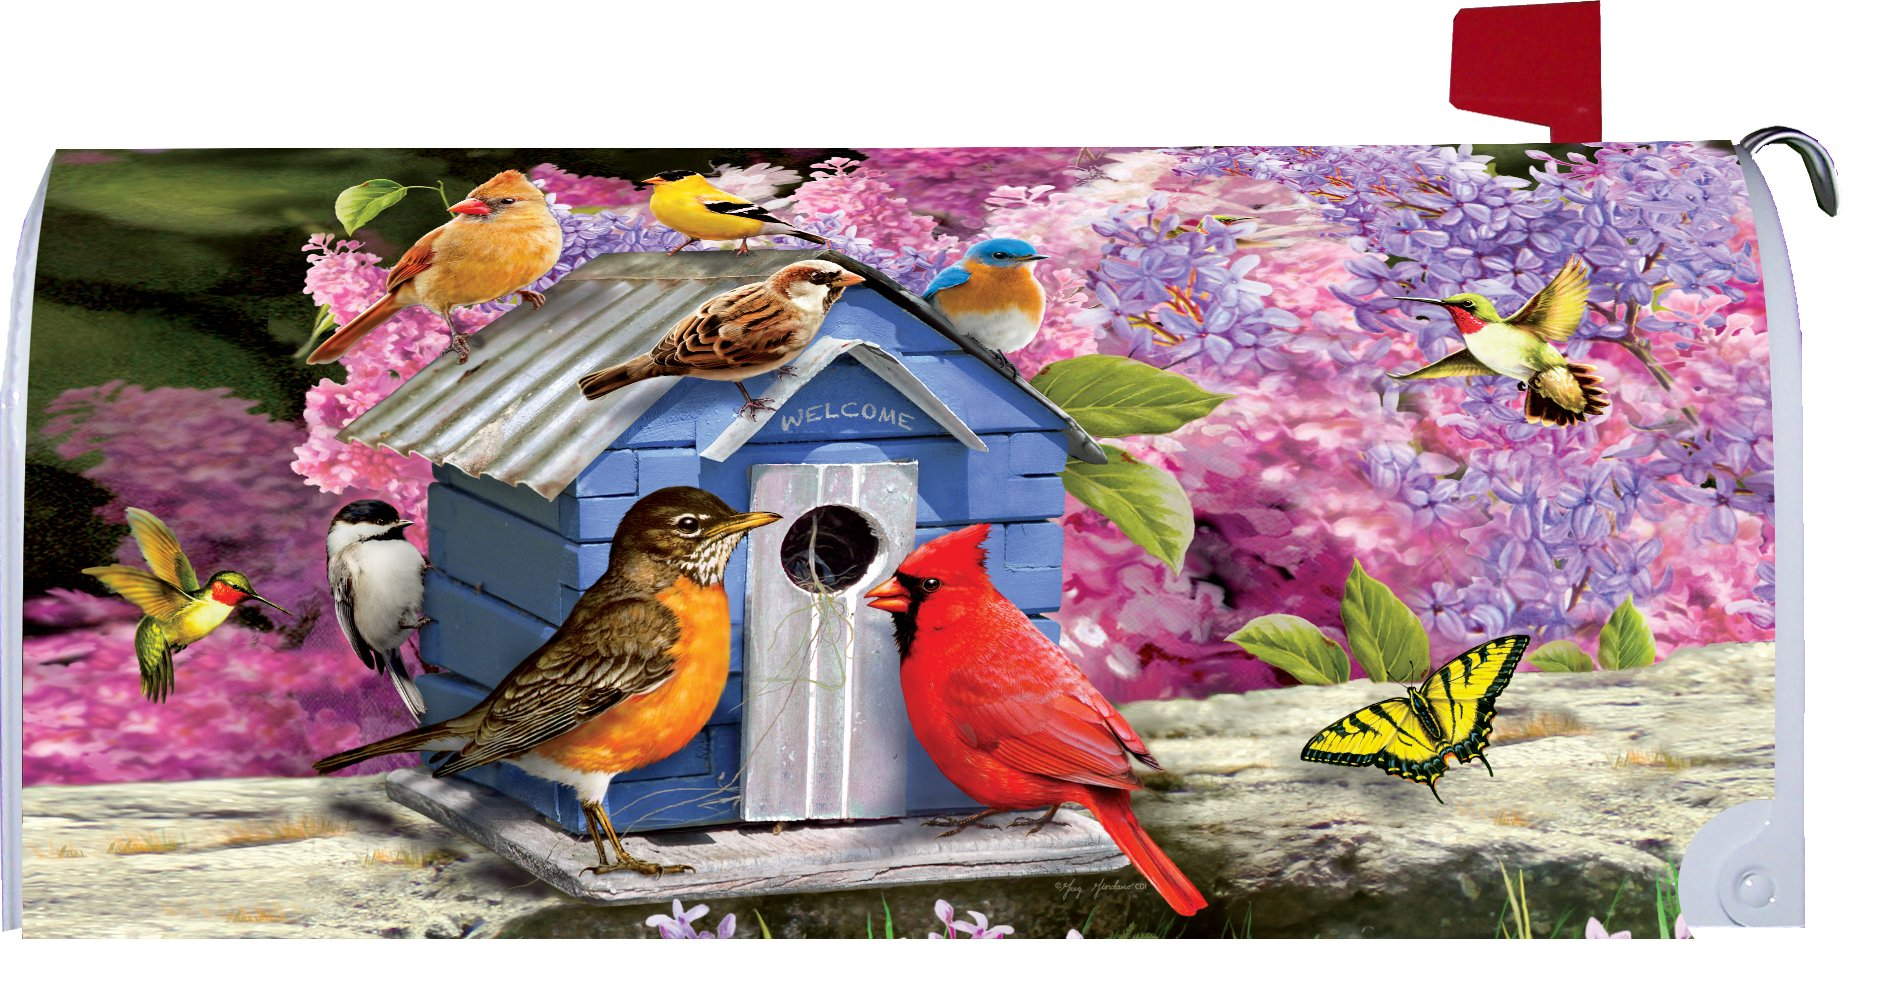 Songbird Birdhouse - Mailbox Makover Cover - Vinyl witn Magnetic Strips for Steel Standard Rural Mailbox - Copyright, Licensed and Trademarked by Custom Decor Inc.